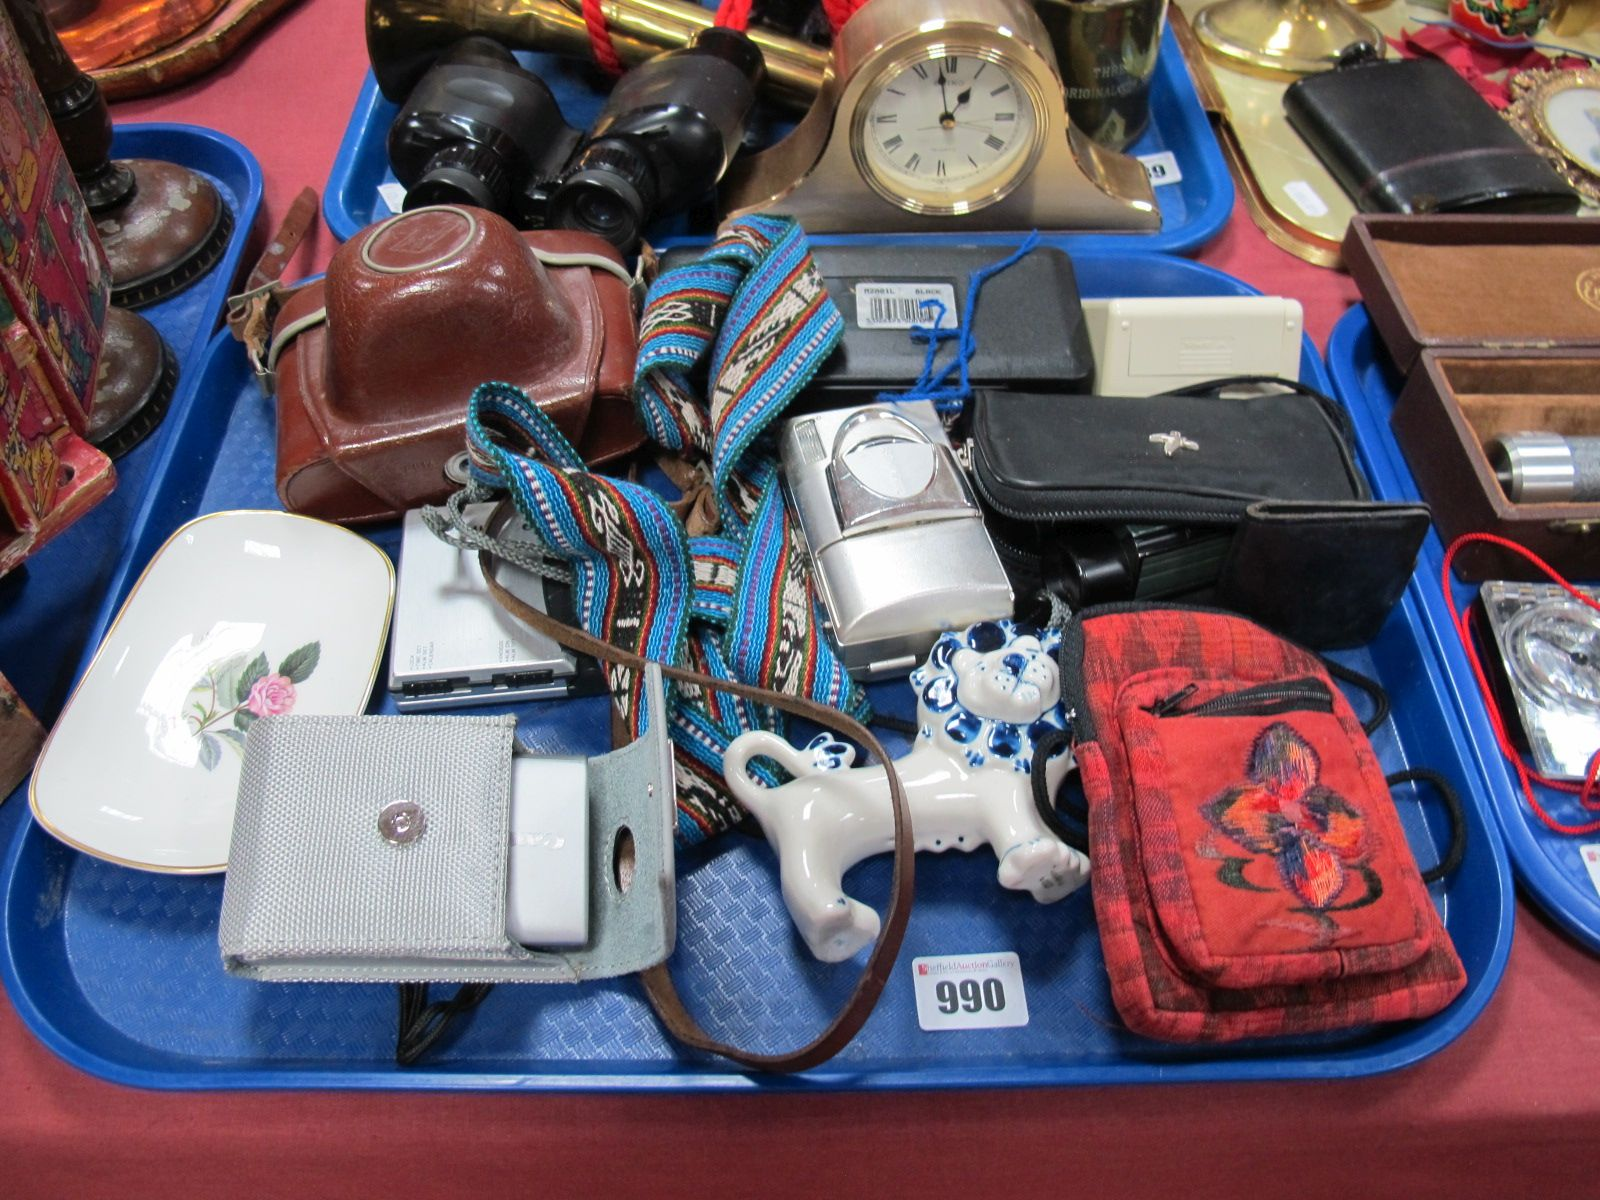 Lot 990 - Canon 5.0 40.0mm Olympus and Agfa Cameras, Swarovski, Binoculars, torch, USSR lion, etc:- One Tray